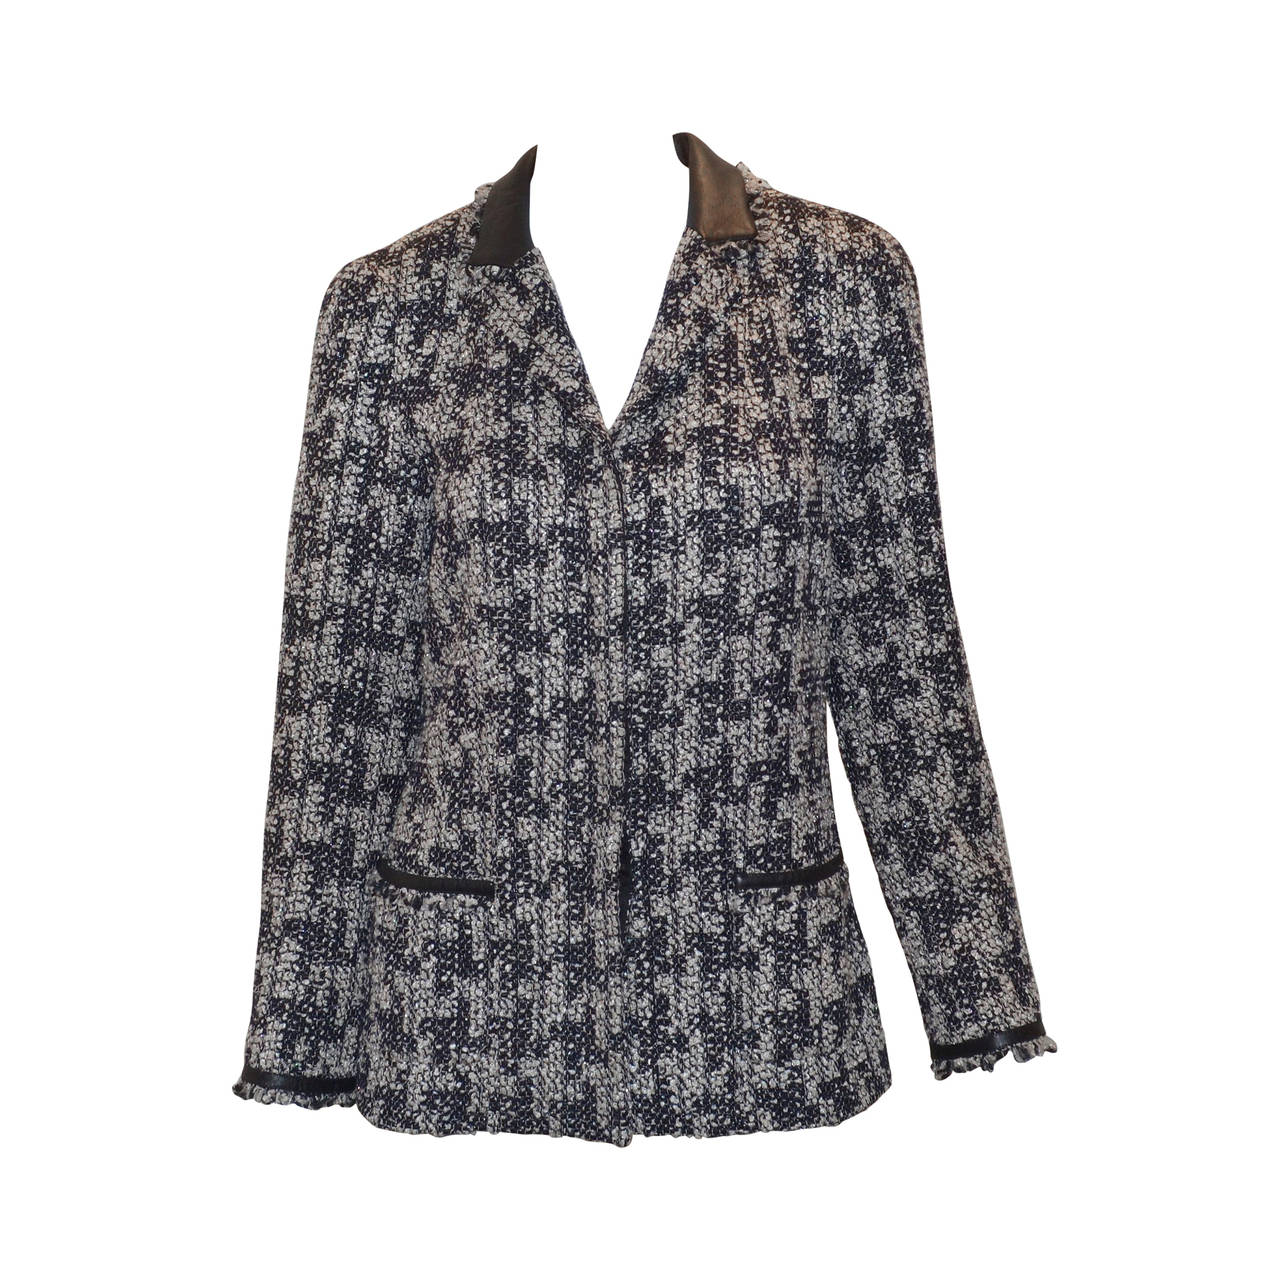 Chanel Houndstooth Jacket Leather Trim 1